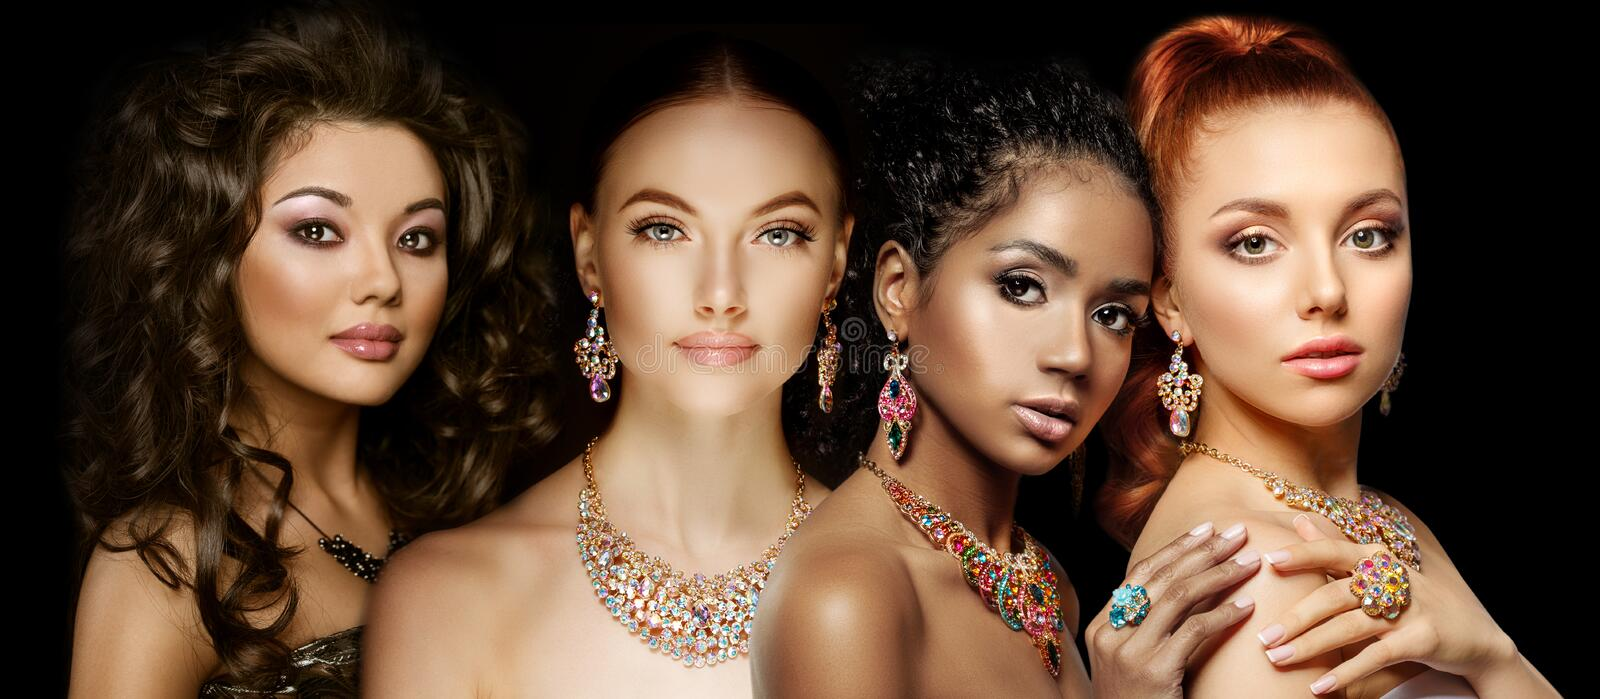 Beautiful Four models girls with set of Jewelry. Luxury girls in shine jewellry: Eearrings, Necklace, and Ring. Women in jewelry. From Gold, Precious Stones royalty free stock images